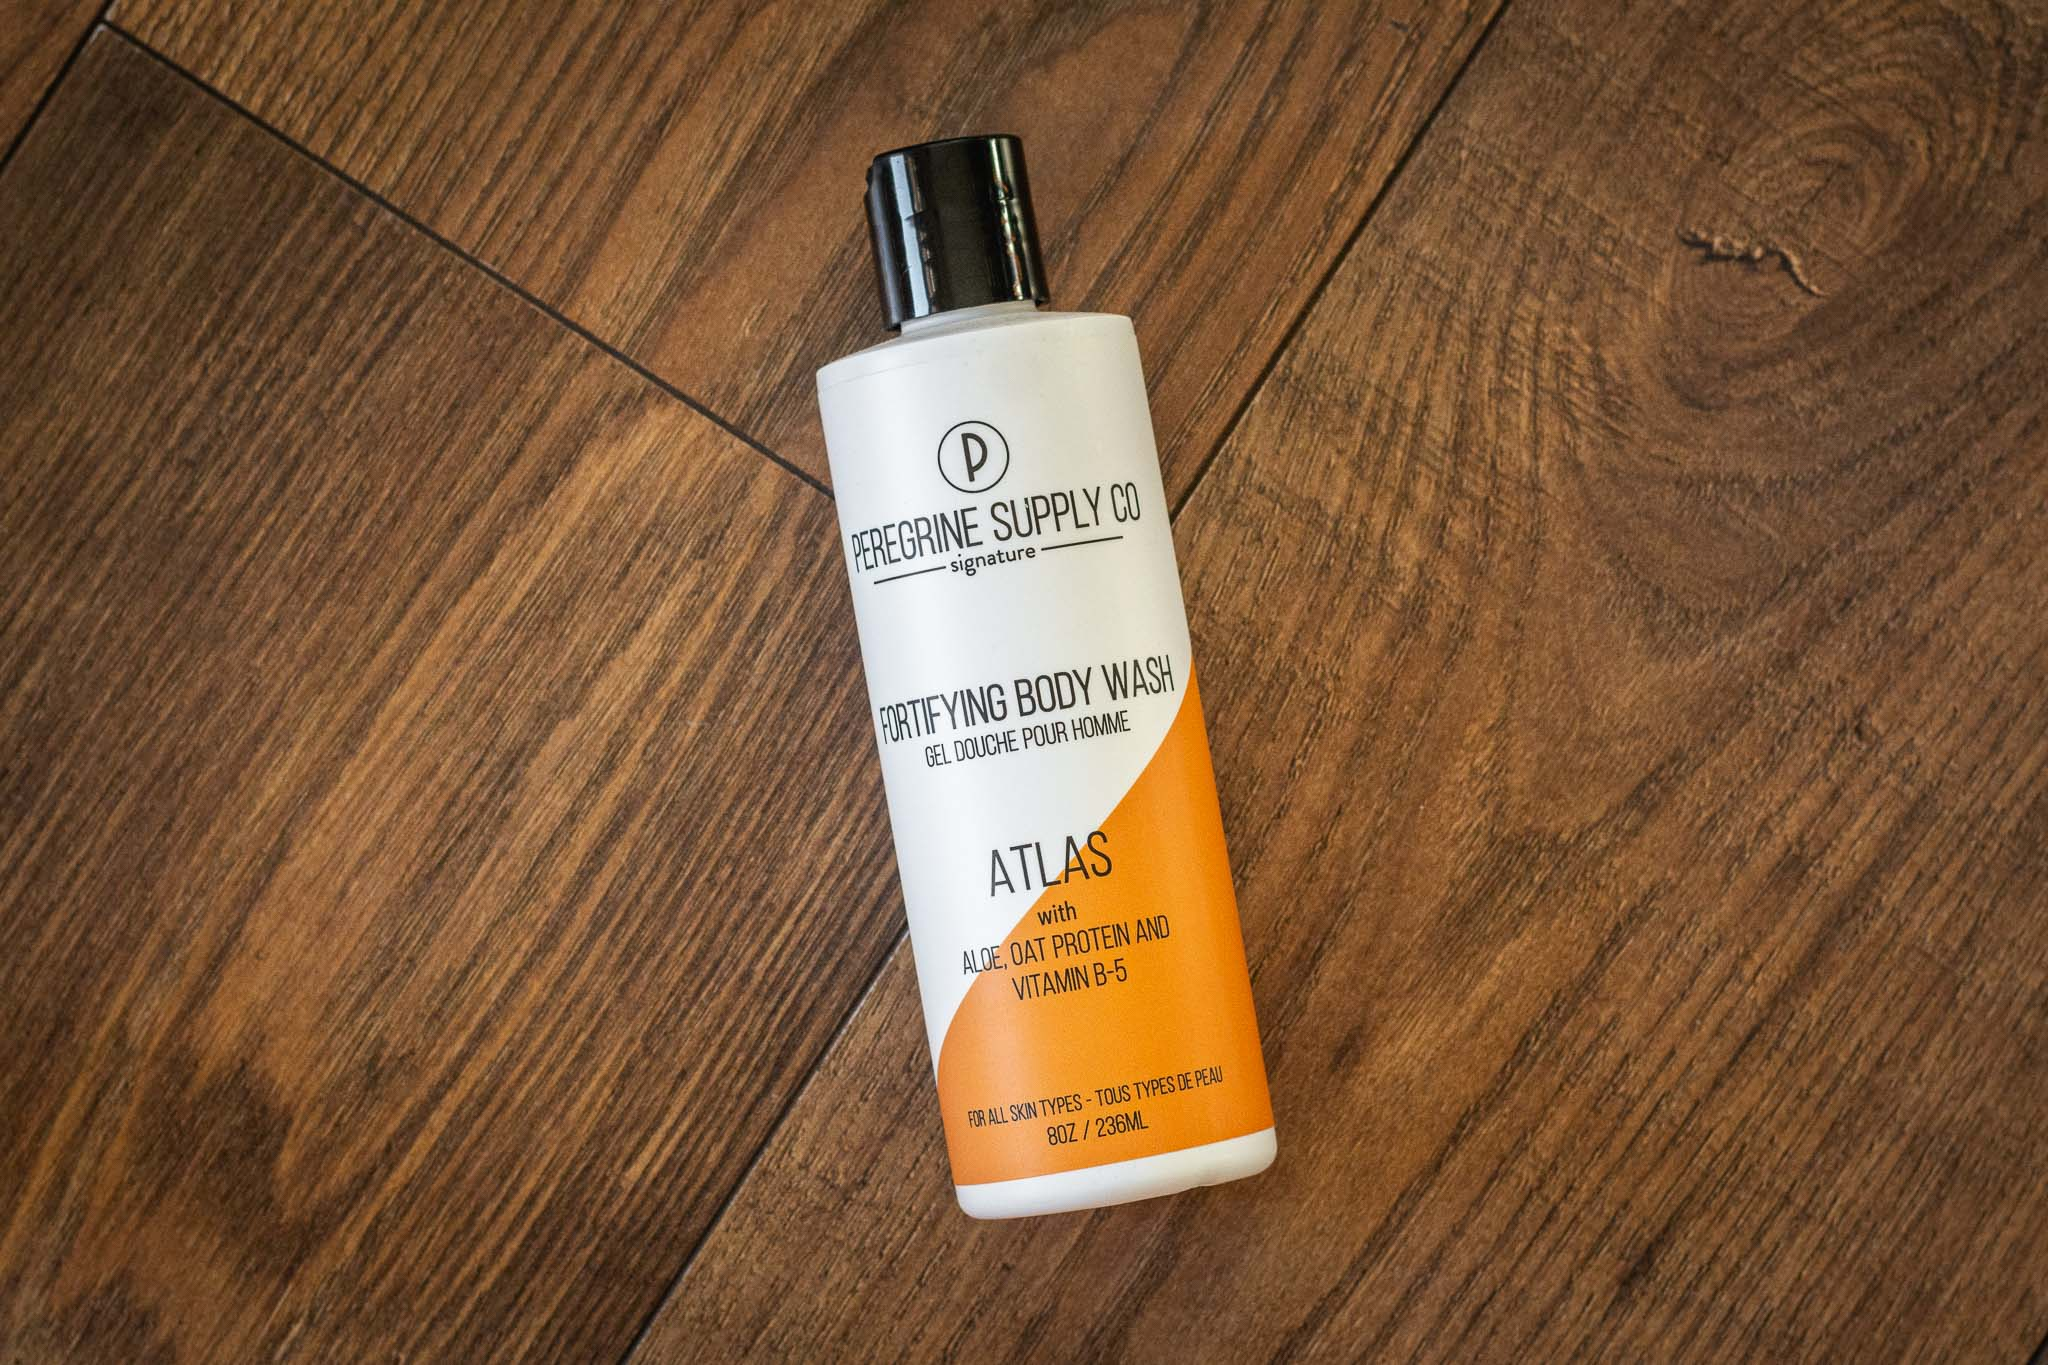 Fortifying Body Wash by Peregrine Supply Co